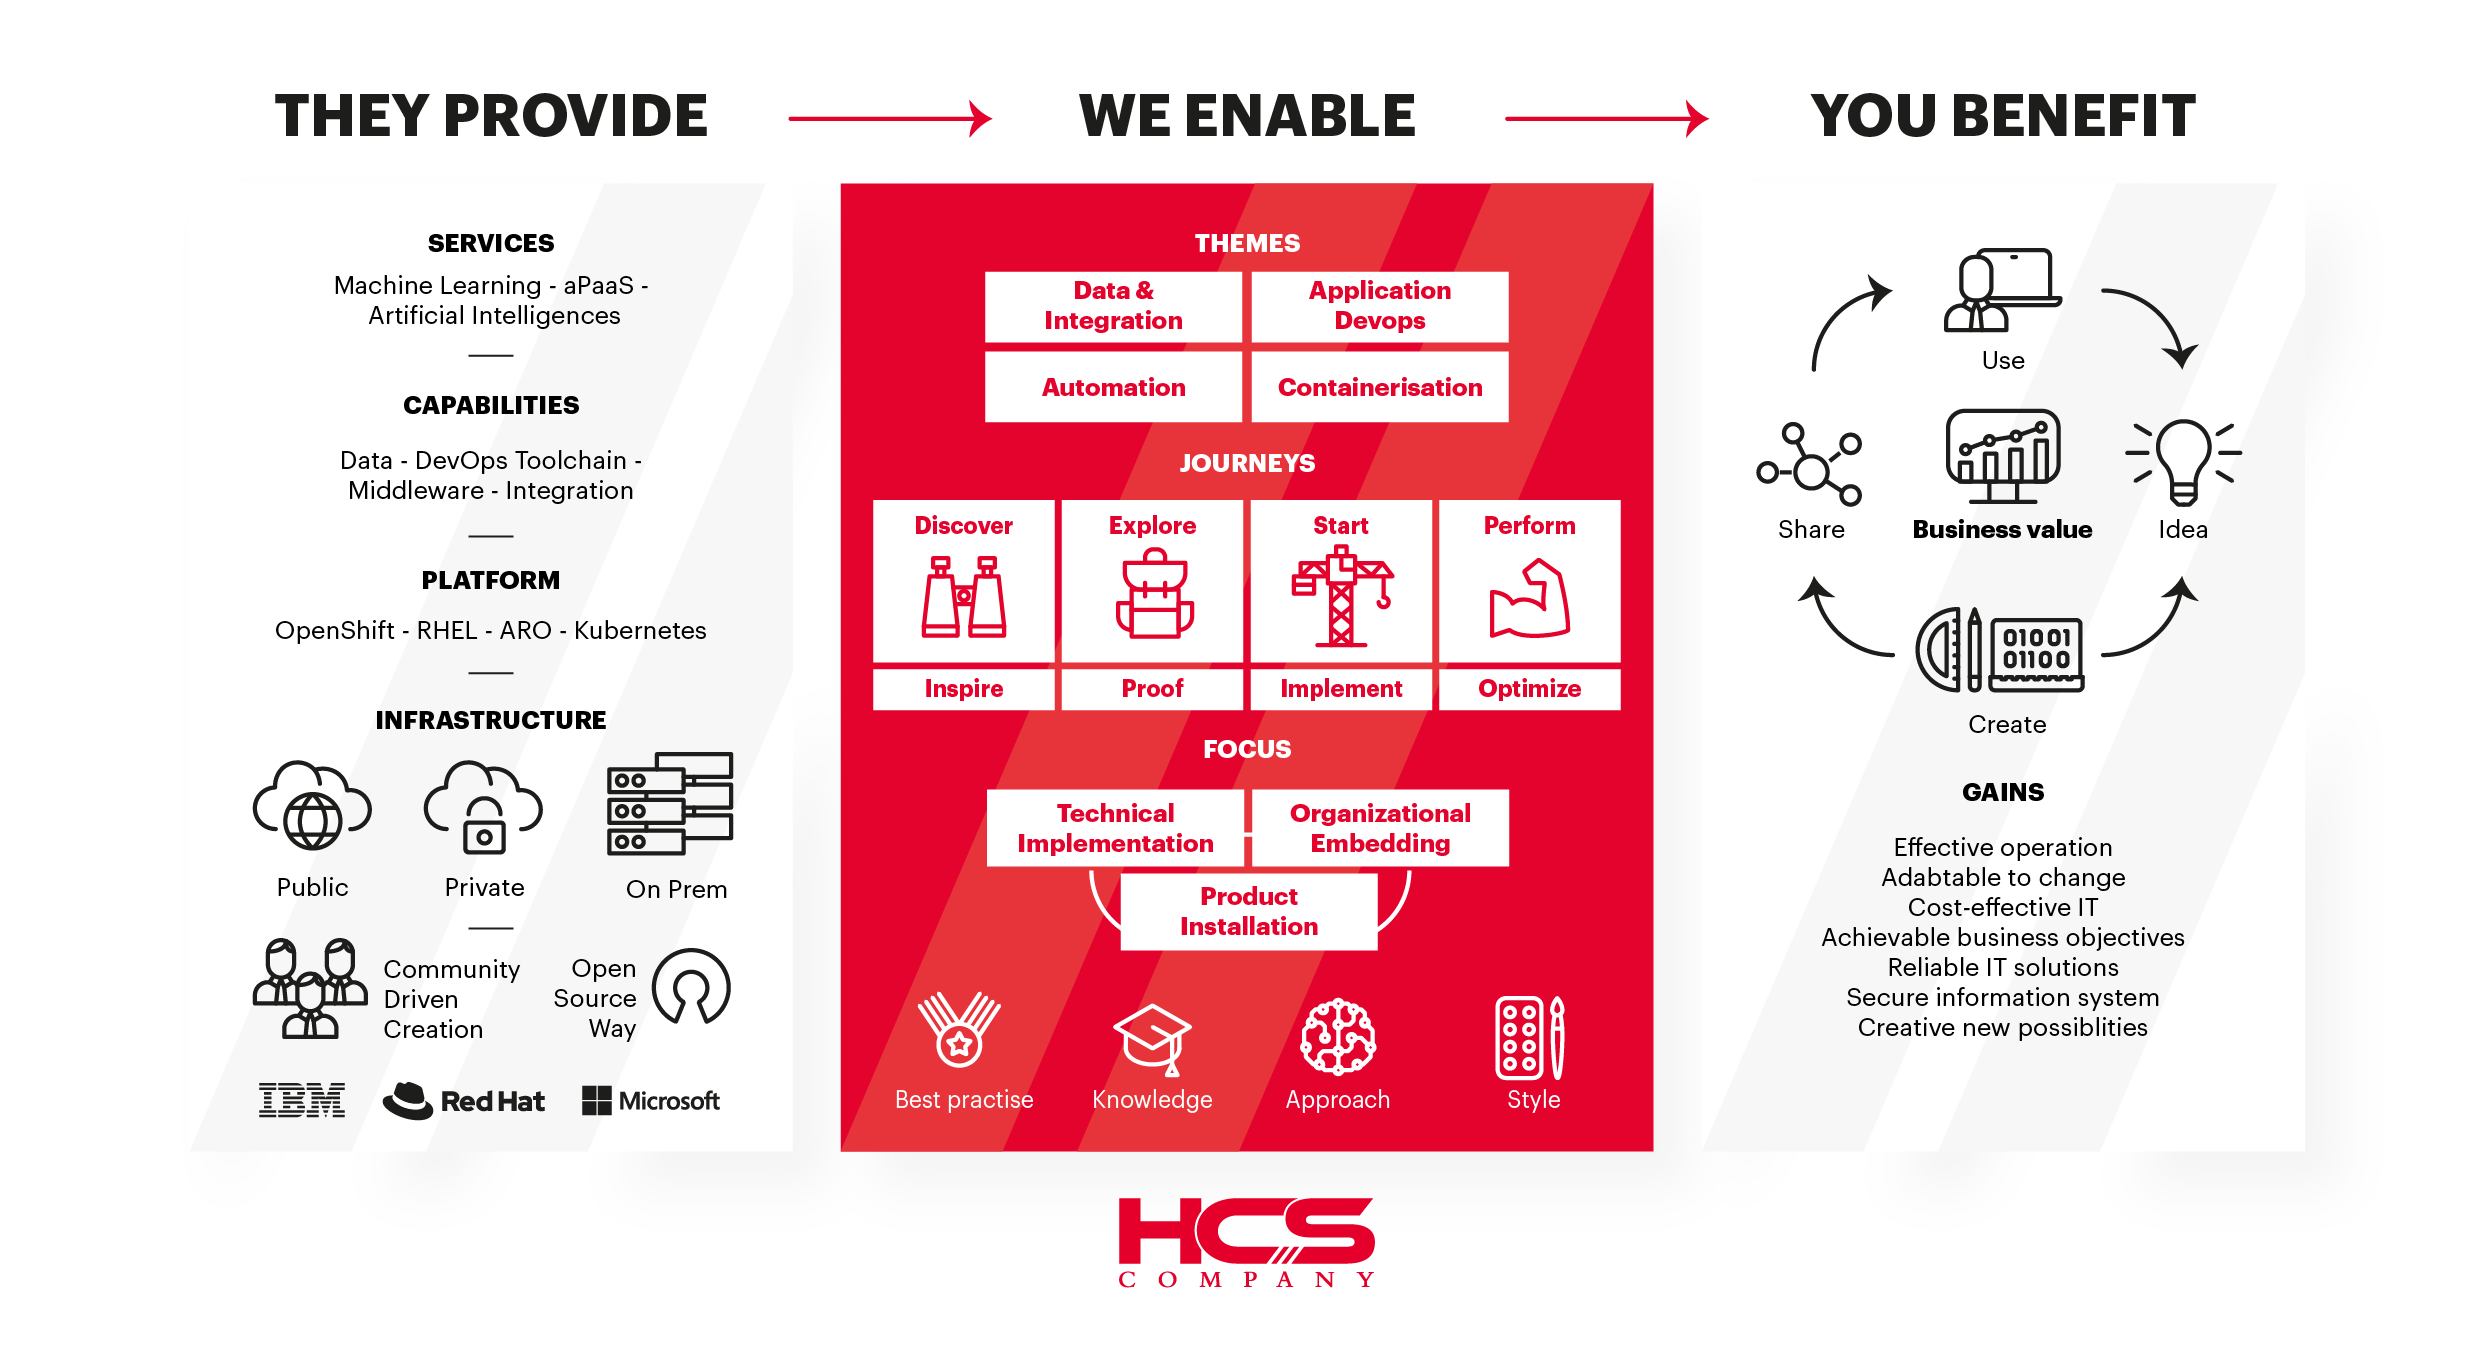 HCS - We Enable - openshift